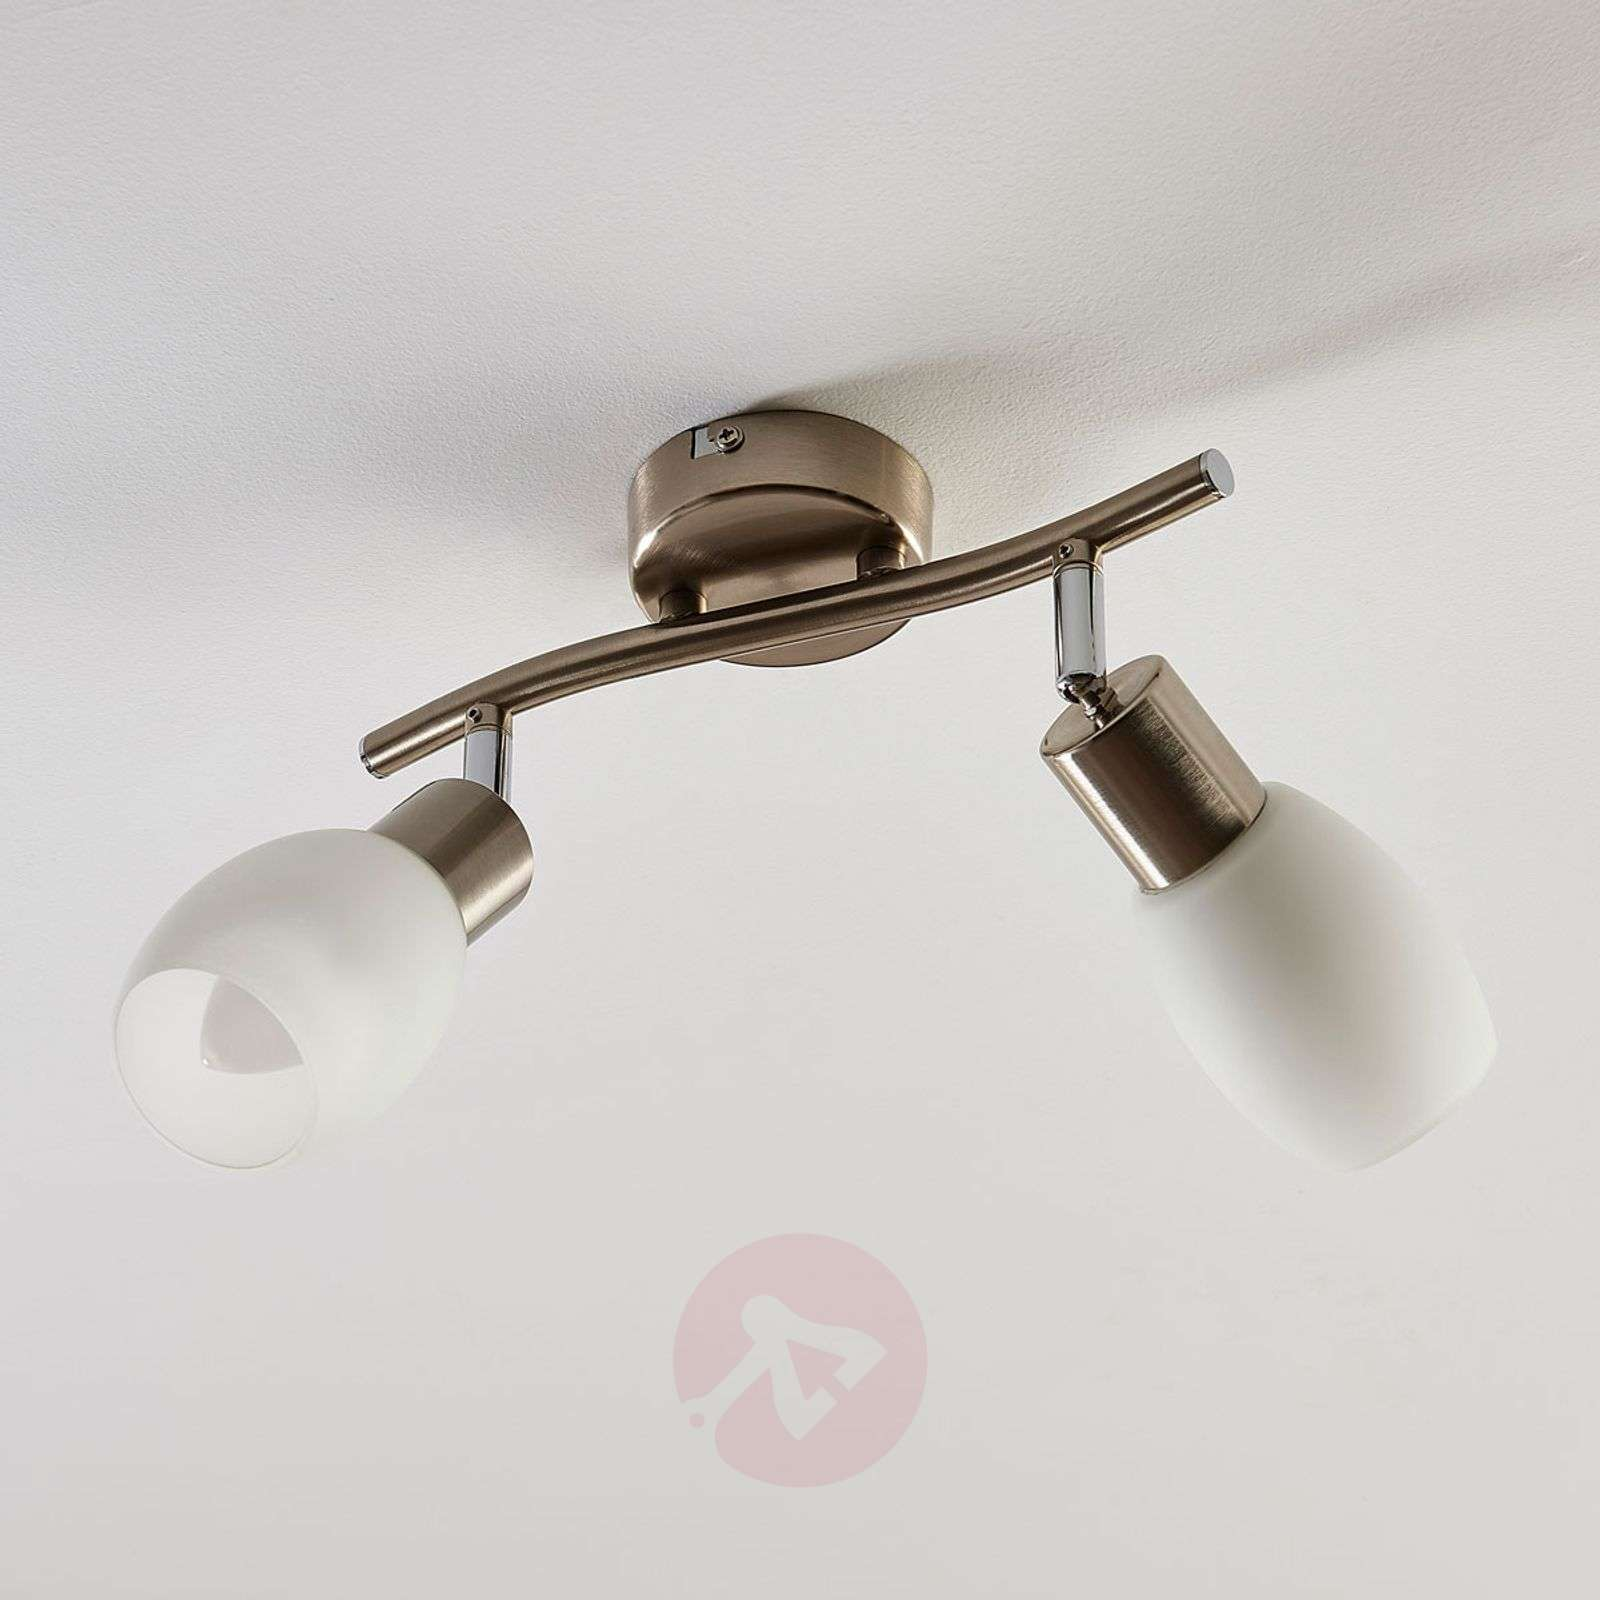 Foco LED Arda para pared y techo, easydim-9621263-02